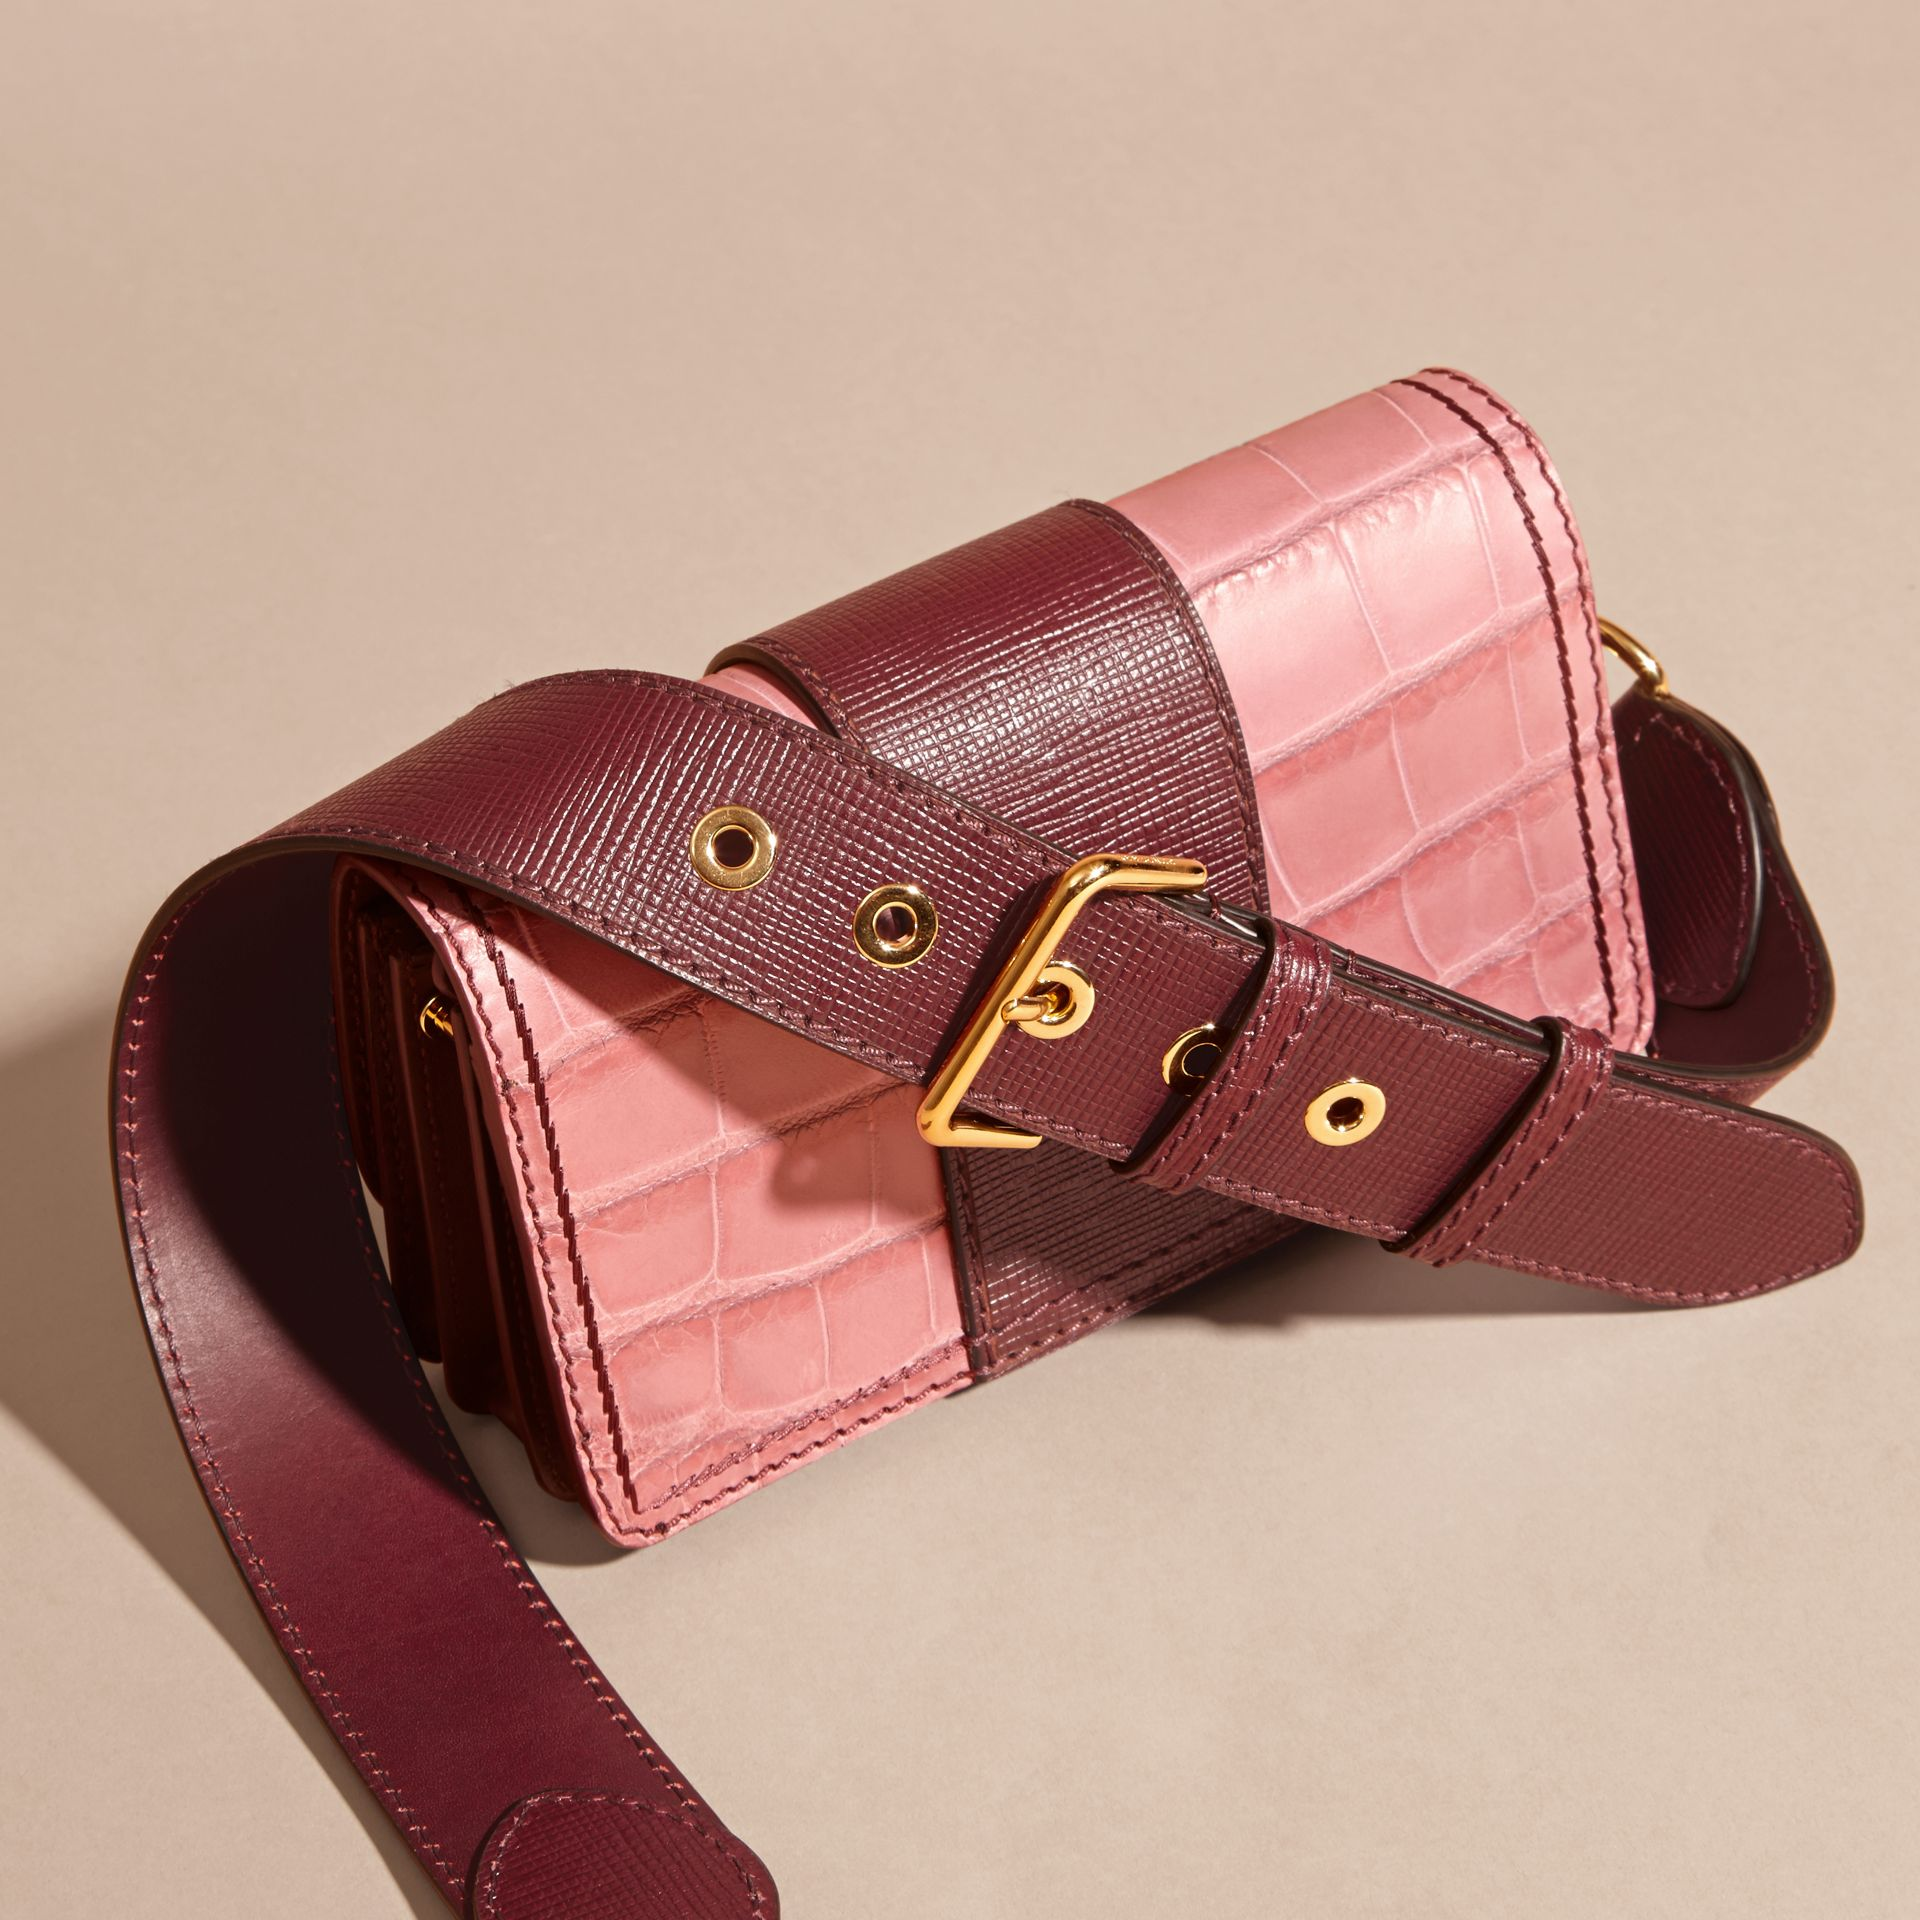 Dusky pink/ burgundy The Small Buckle Bag in Alligator and Leather Dusky Pink/ Burgundy - gallery image 5